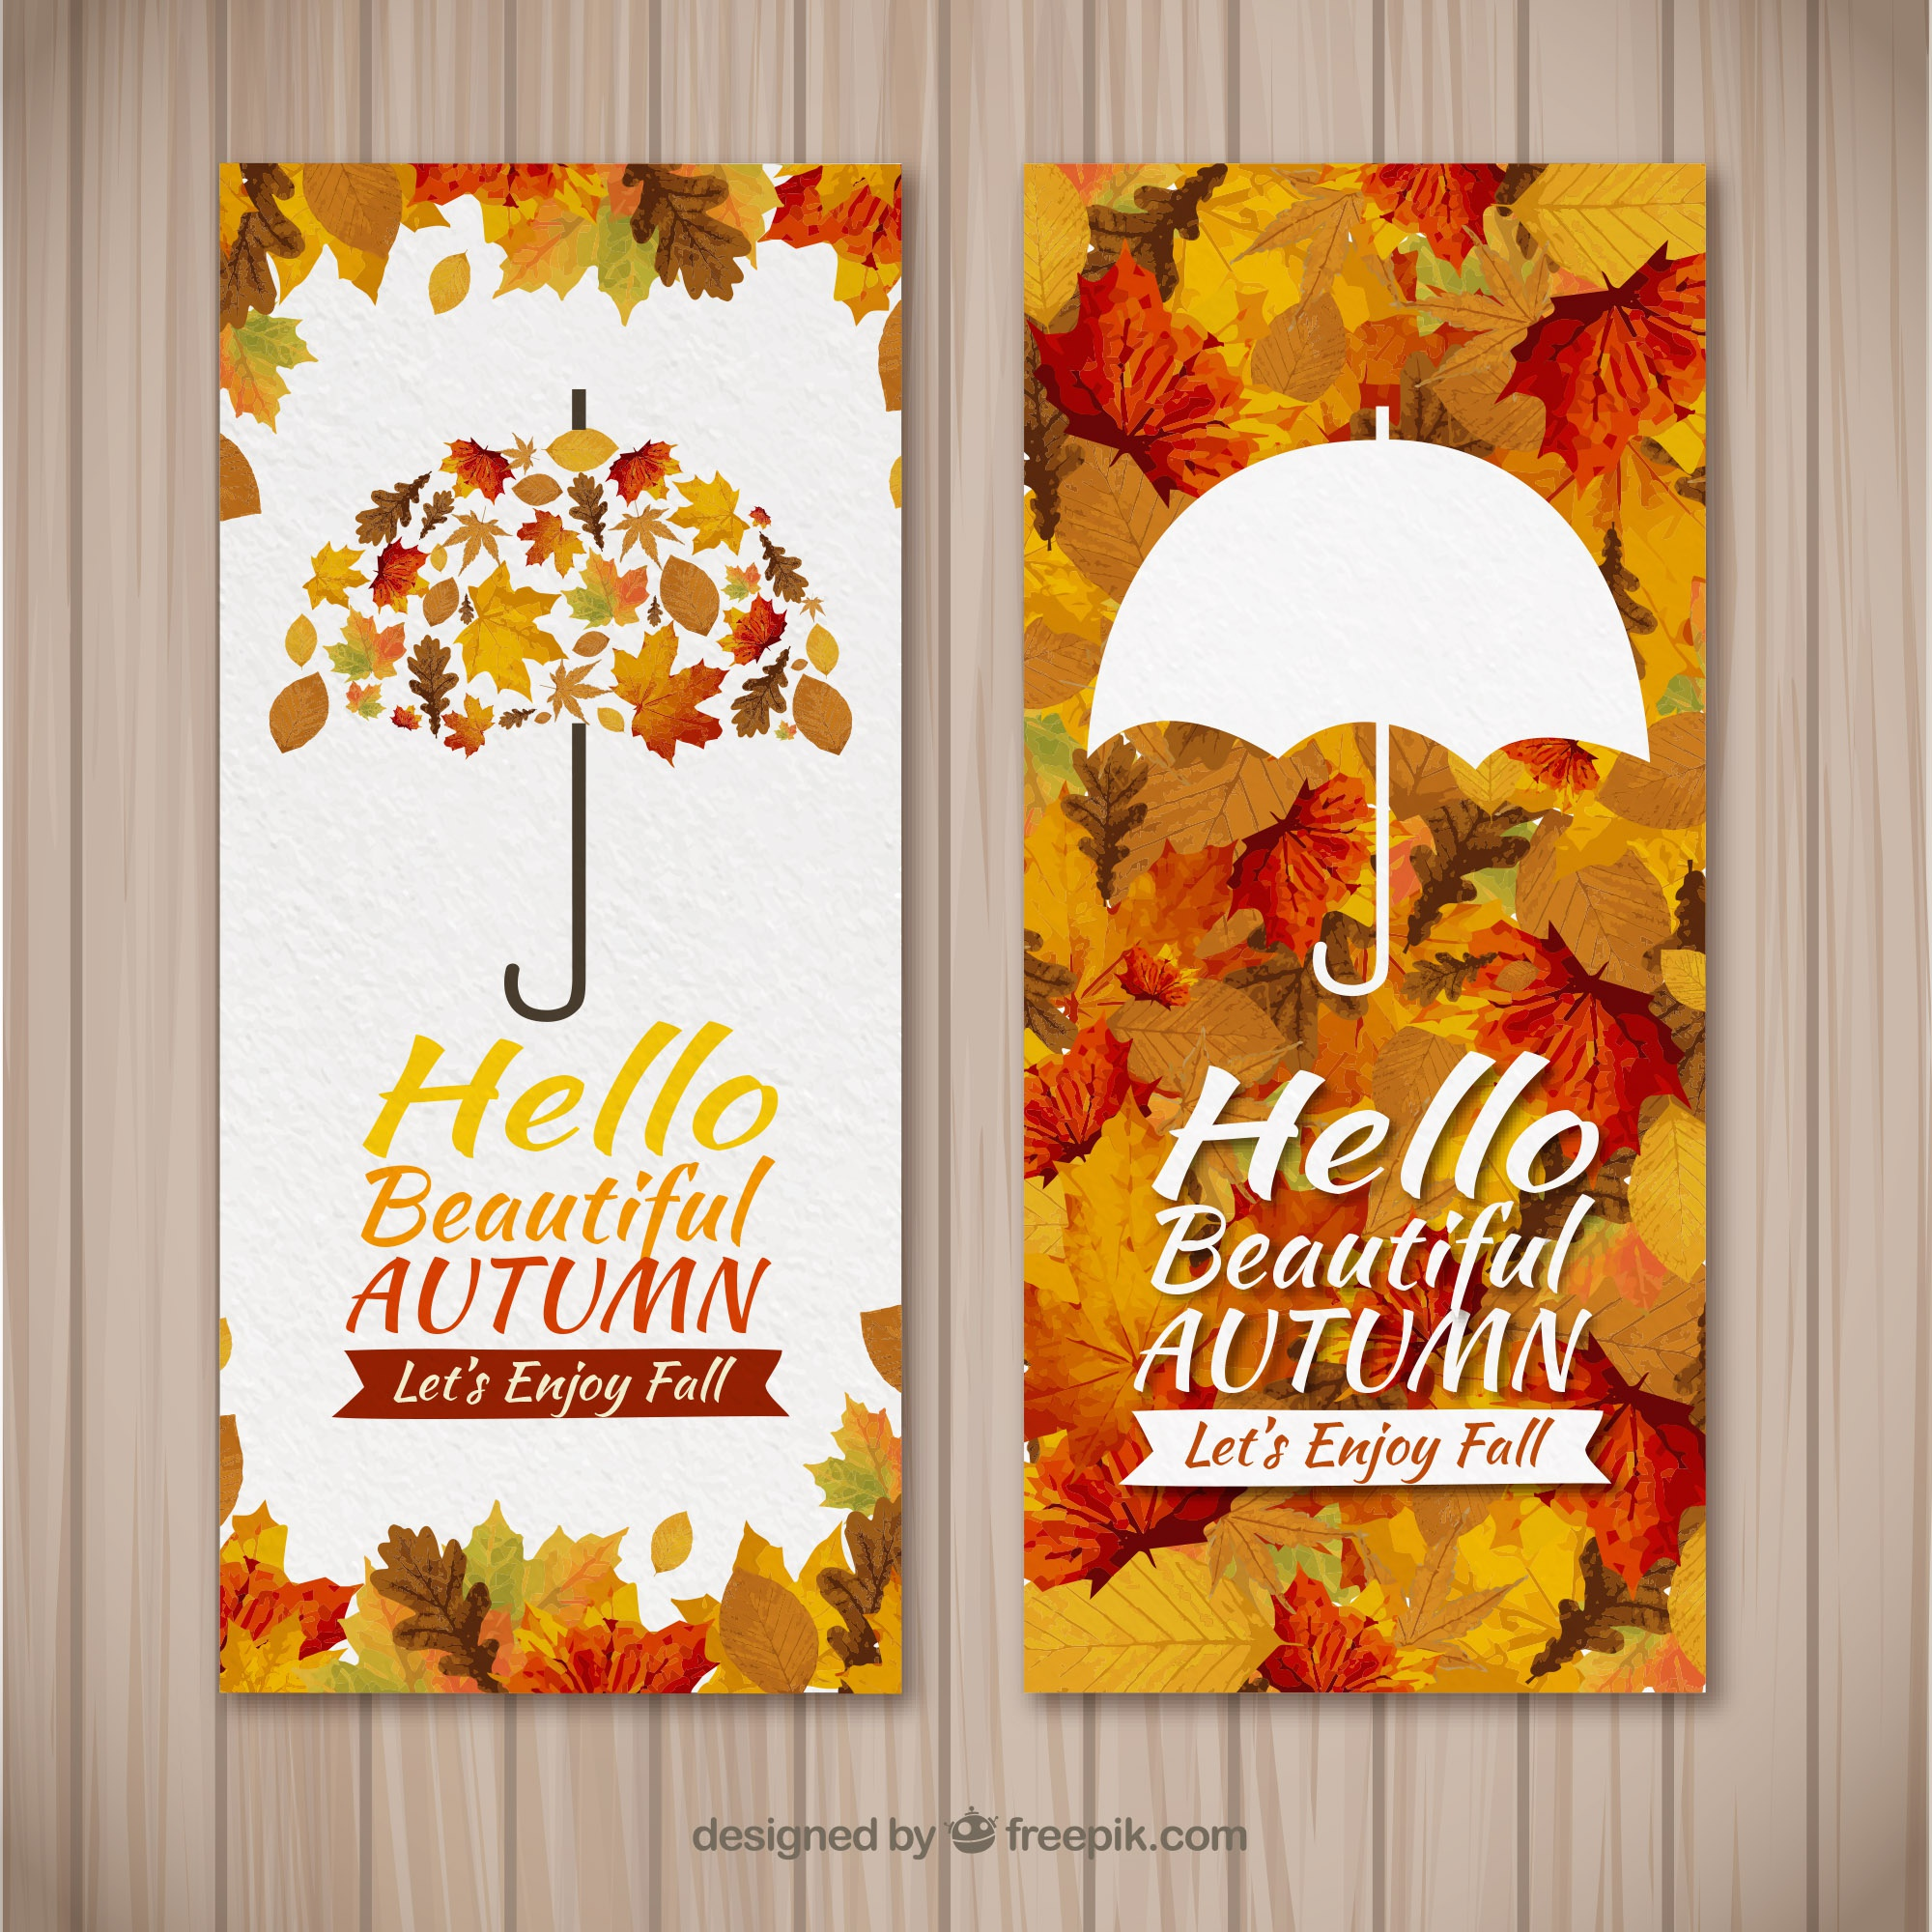 Watercolor autumn banners with modern style